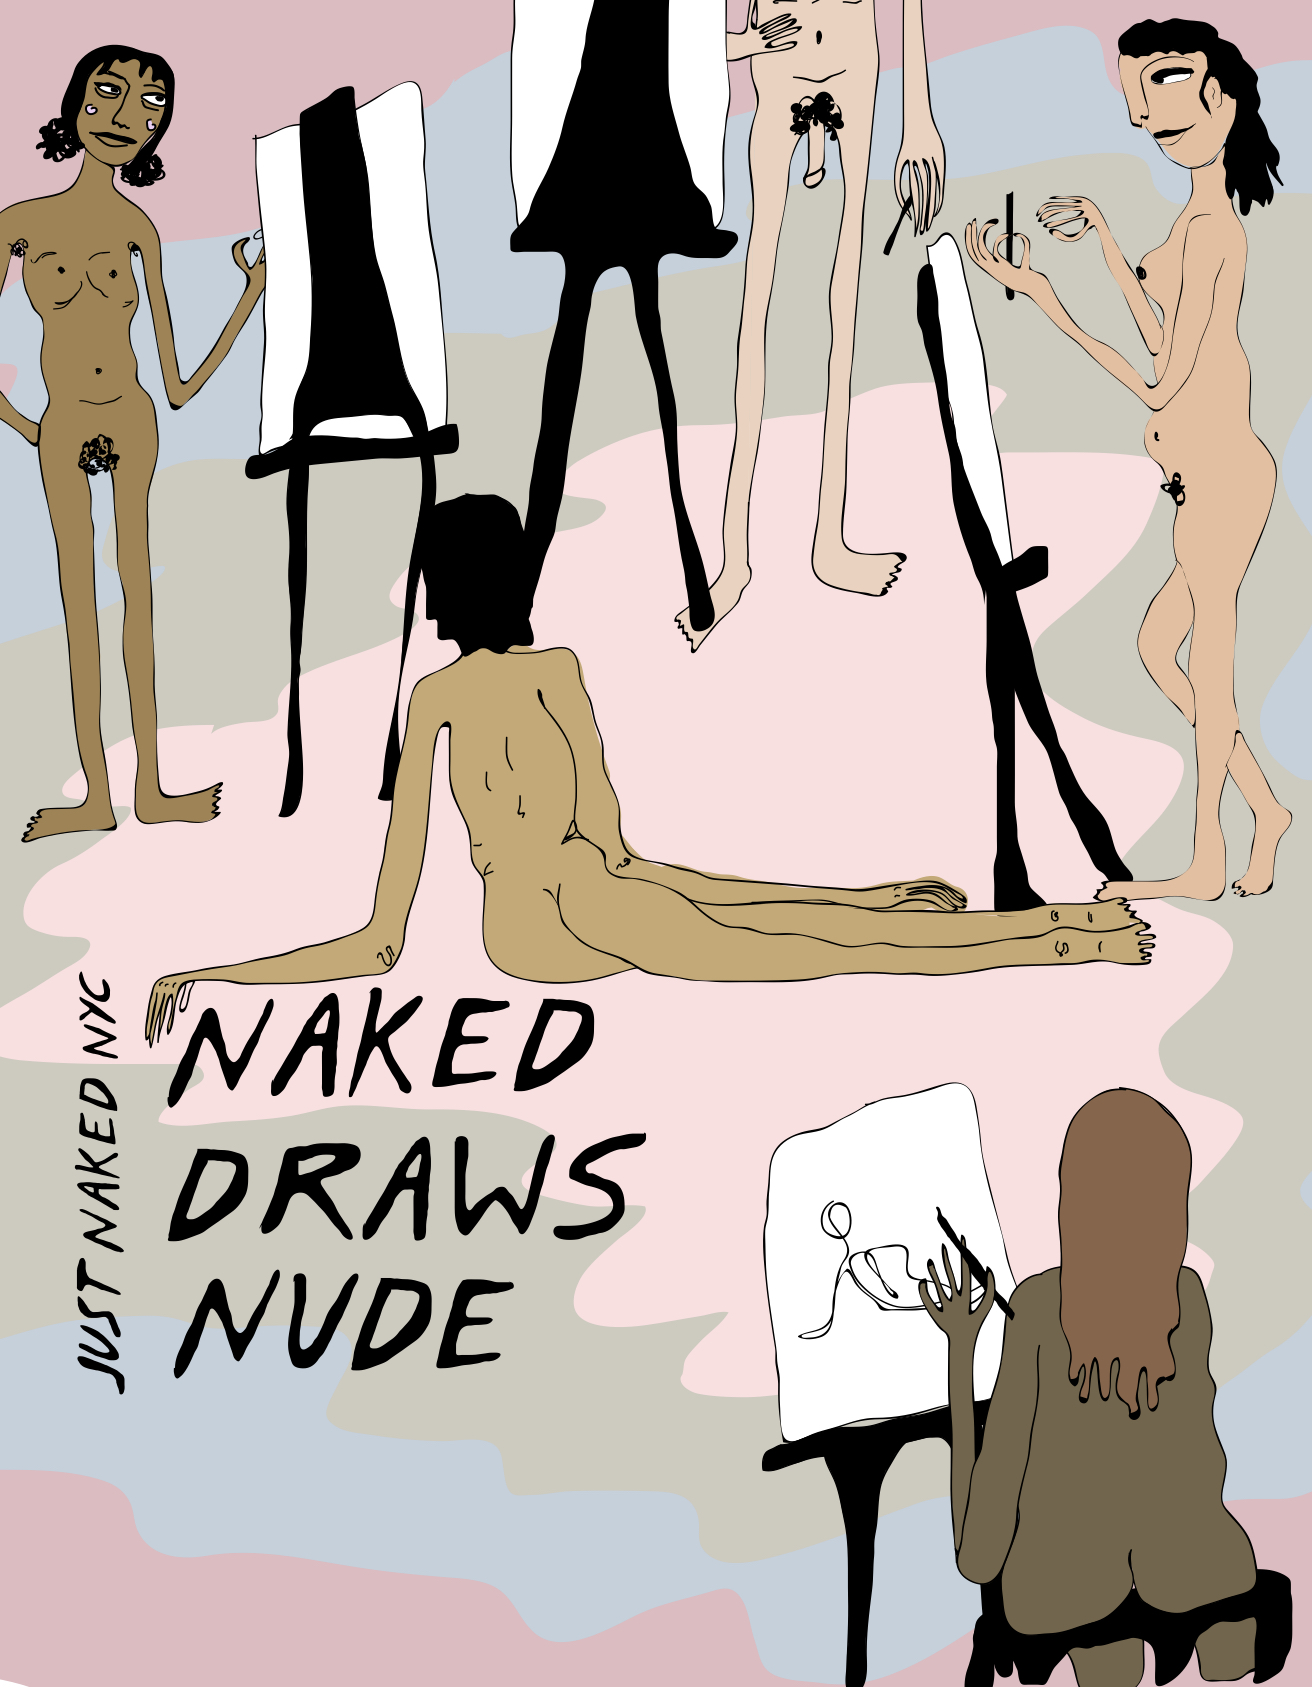 naked draws nude poster @toothache__.jpg